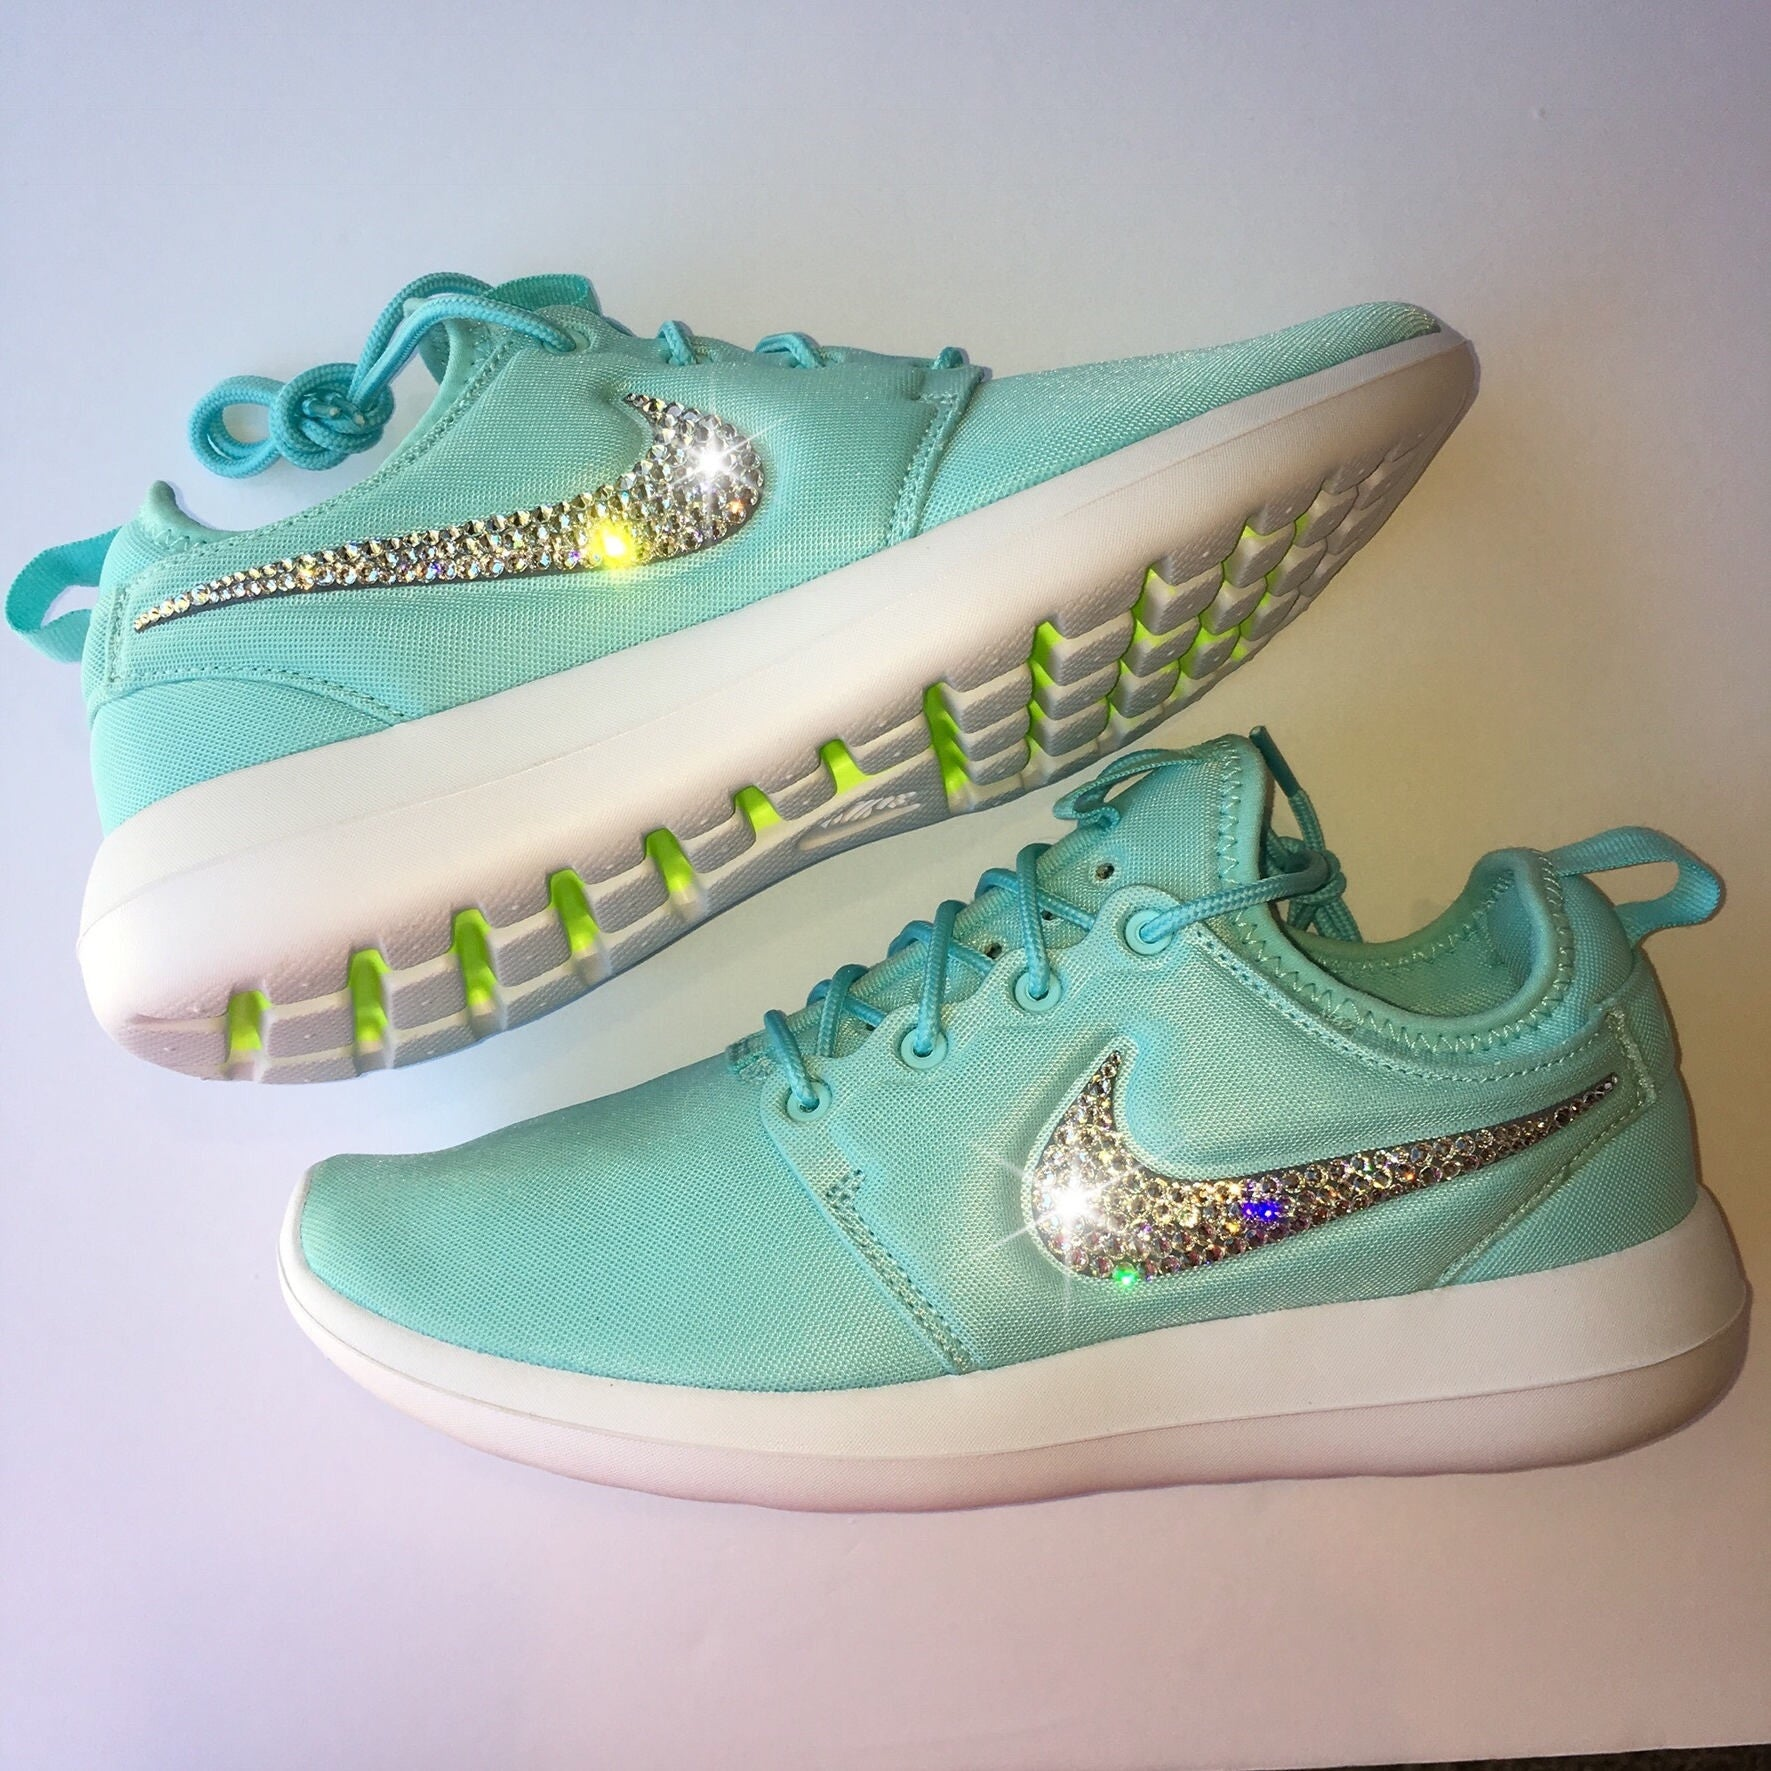 f619bd41b119 Bling Nike Roshe Two Women s Shoes - Tiffany Blue - Bedazzled with Real  Swarovski Crystals